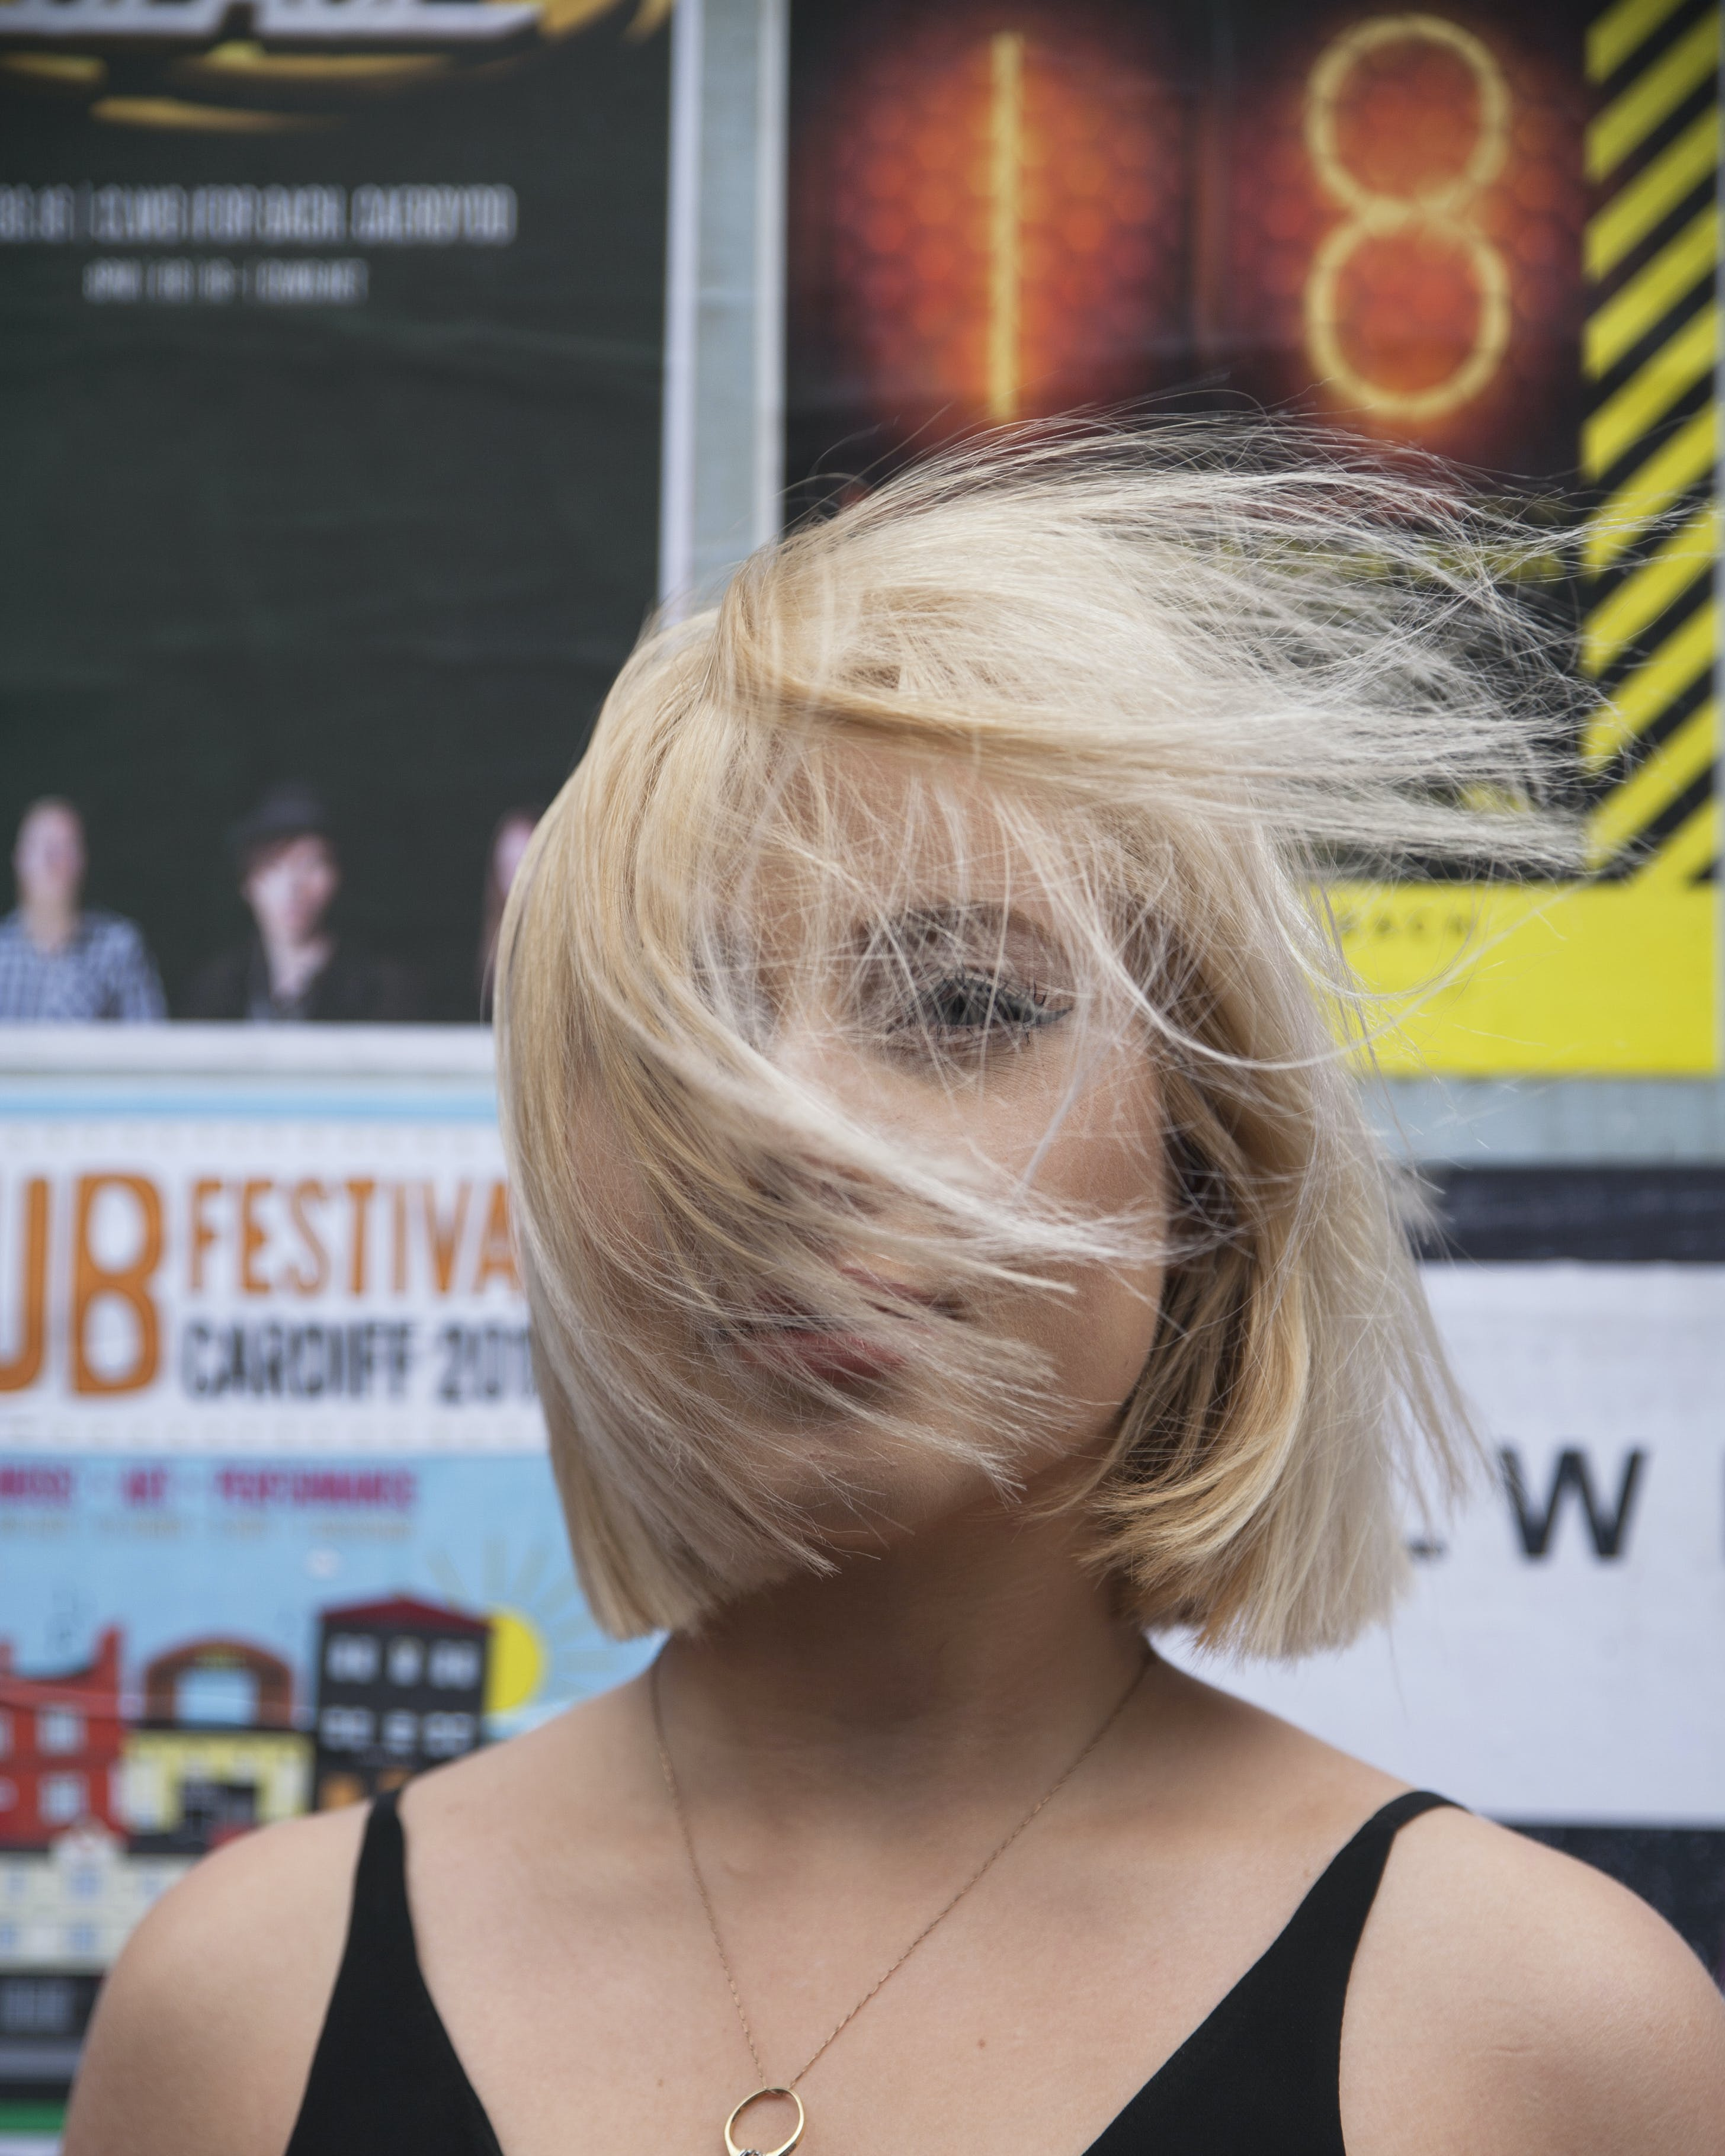 Woman With Flipping Hair Standing Near Poster